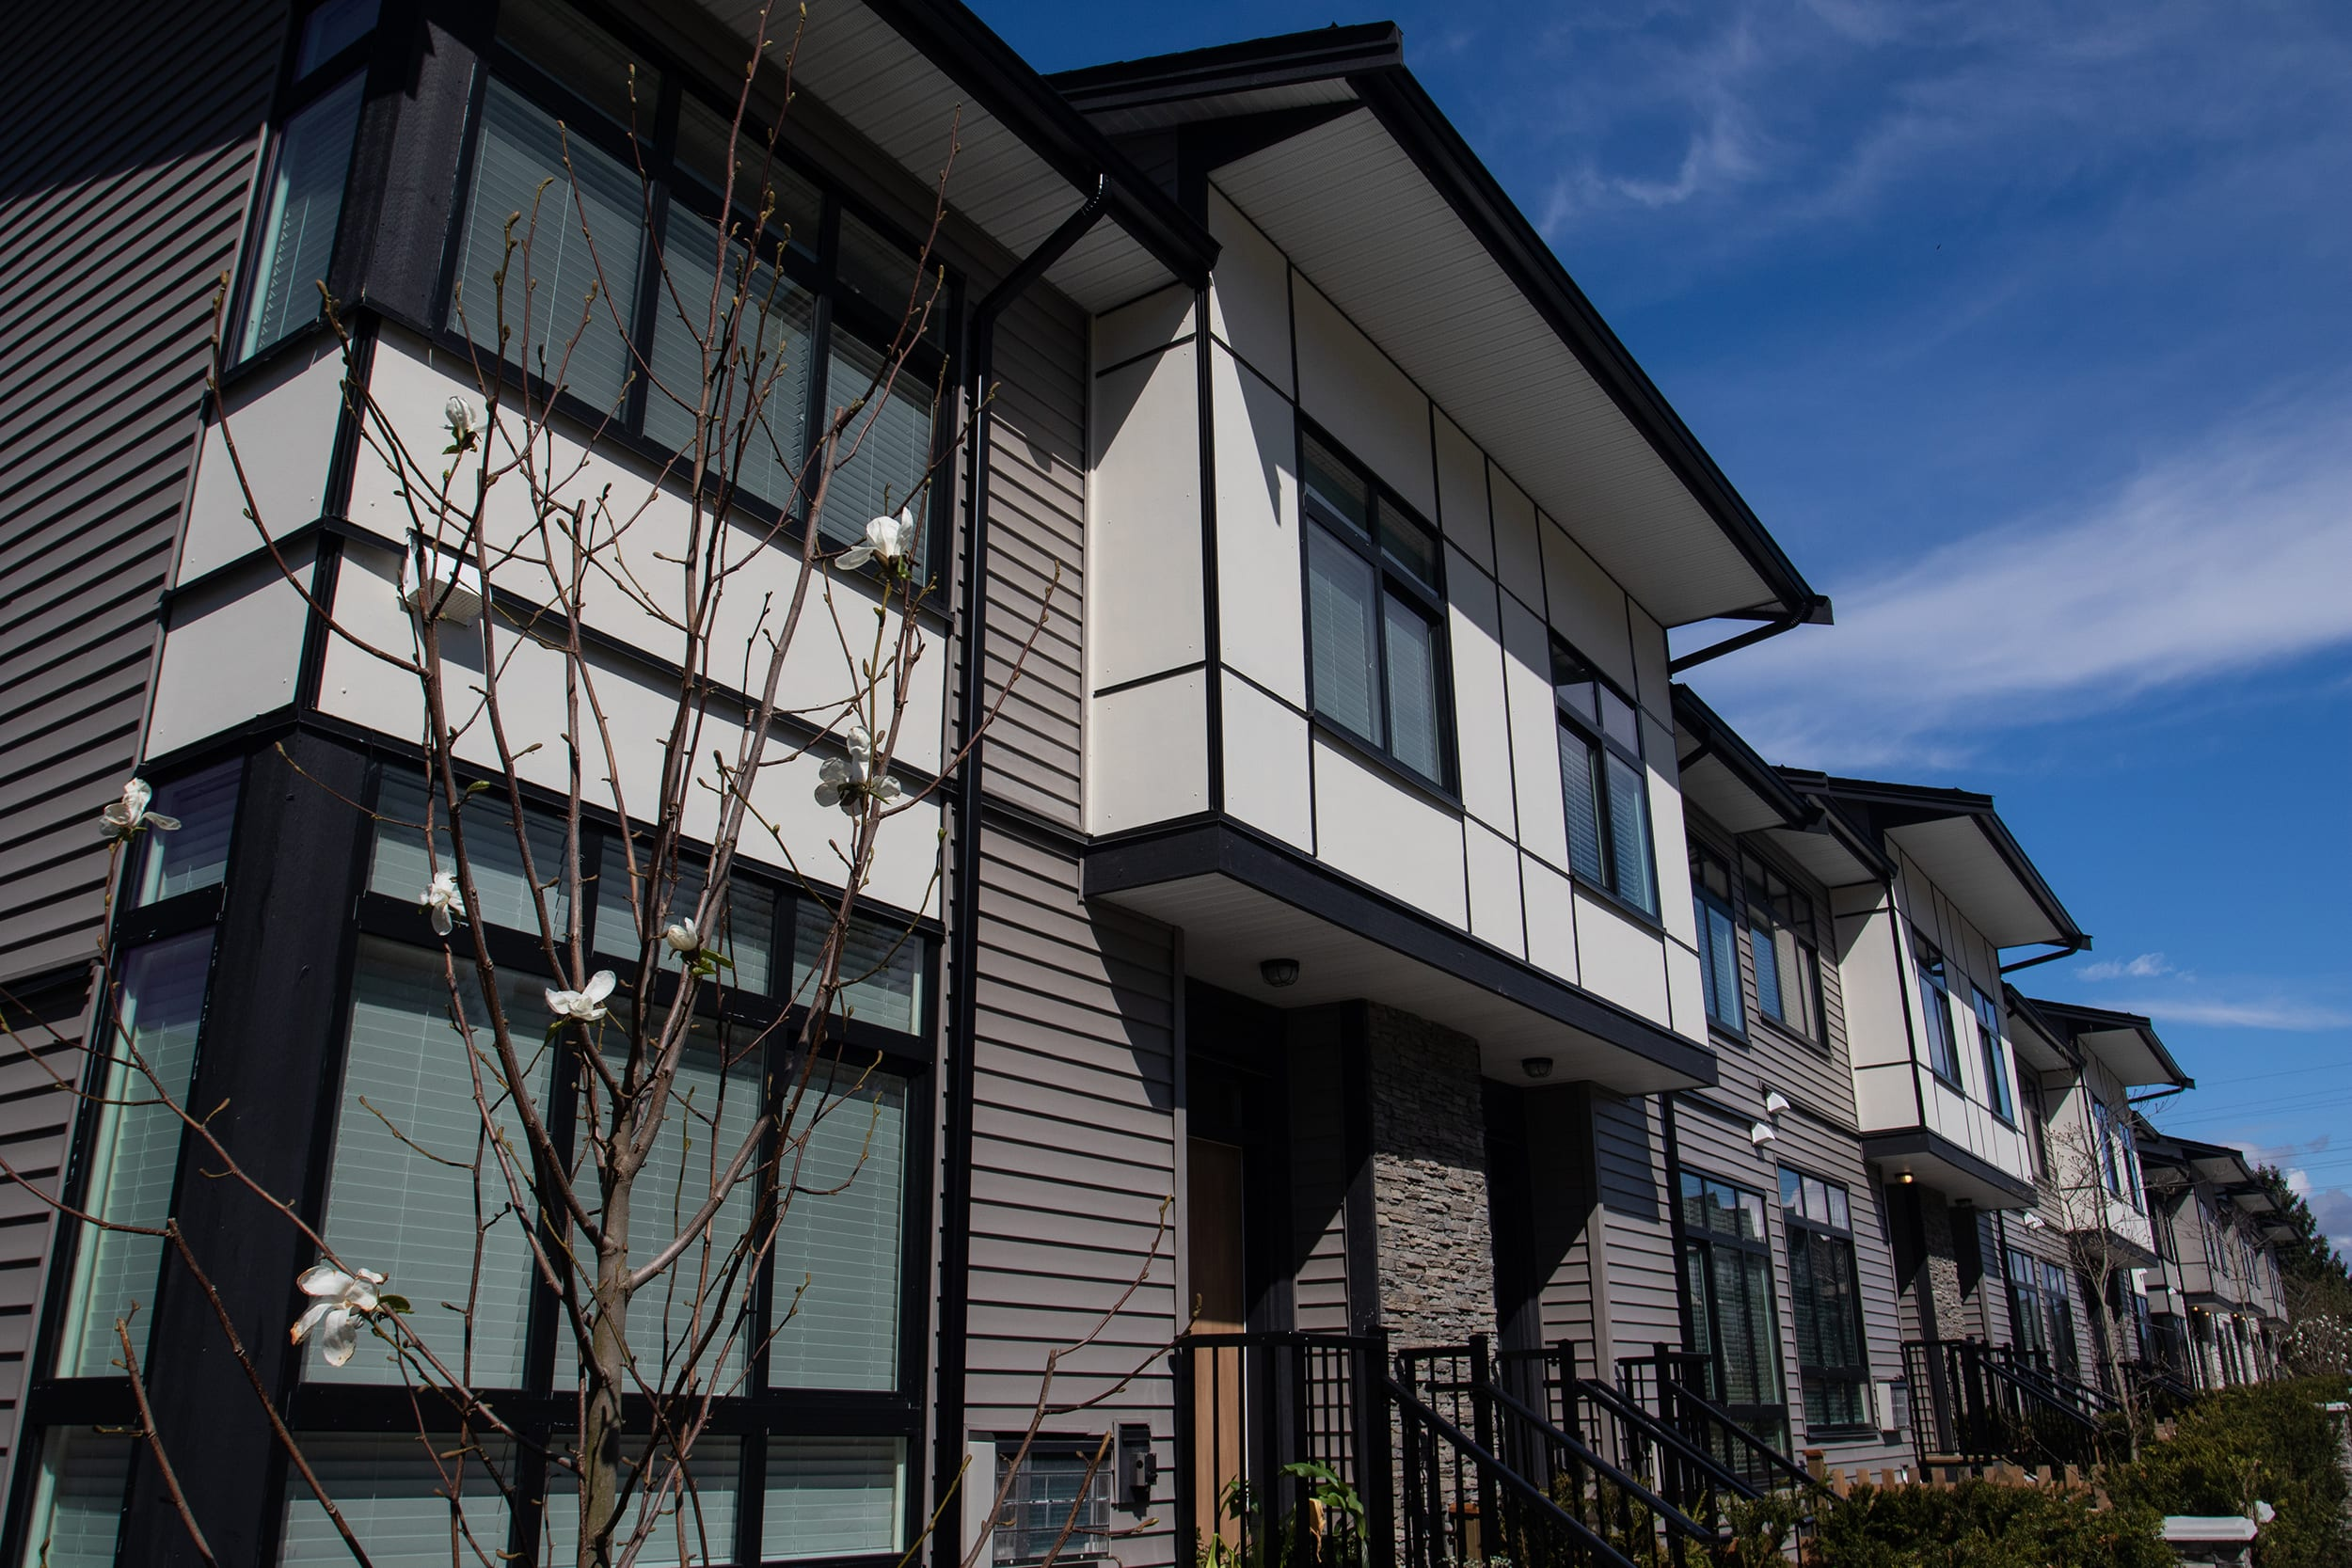 A modern townhome complex features black window trim and multiple building materials, including siding and rock, to create an interesting streetscape.